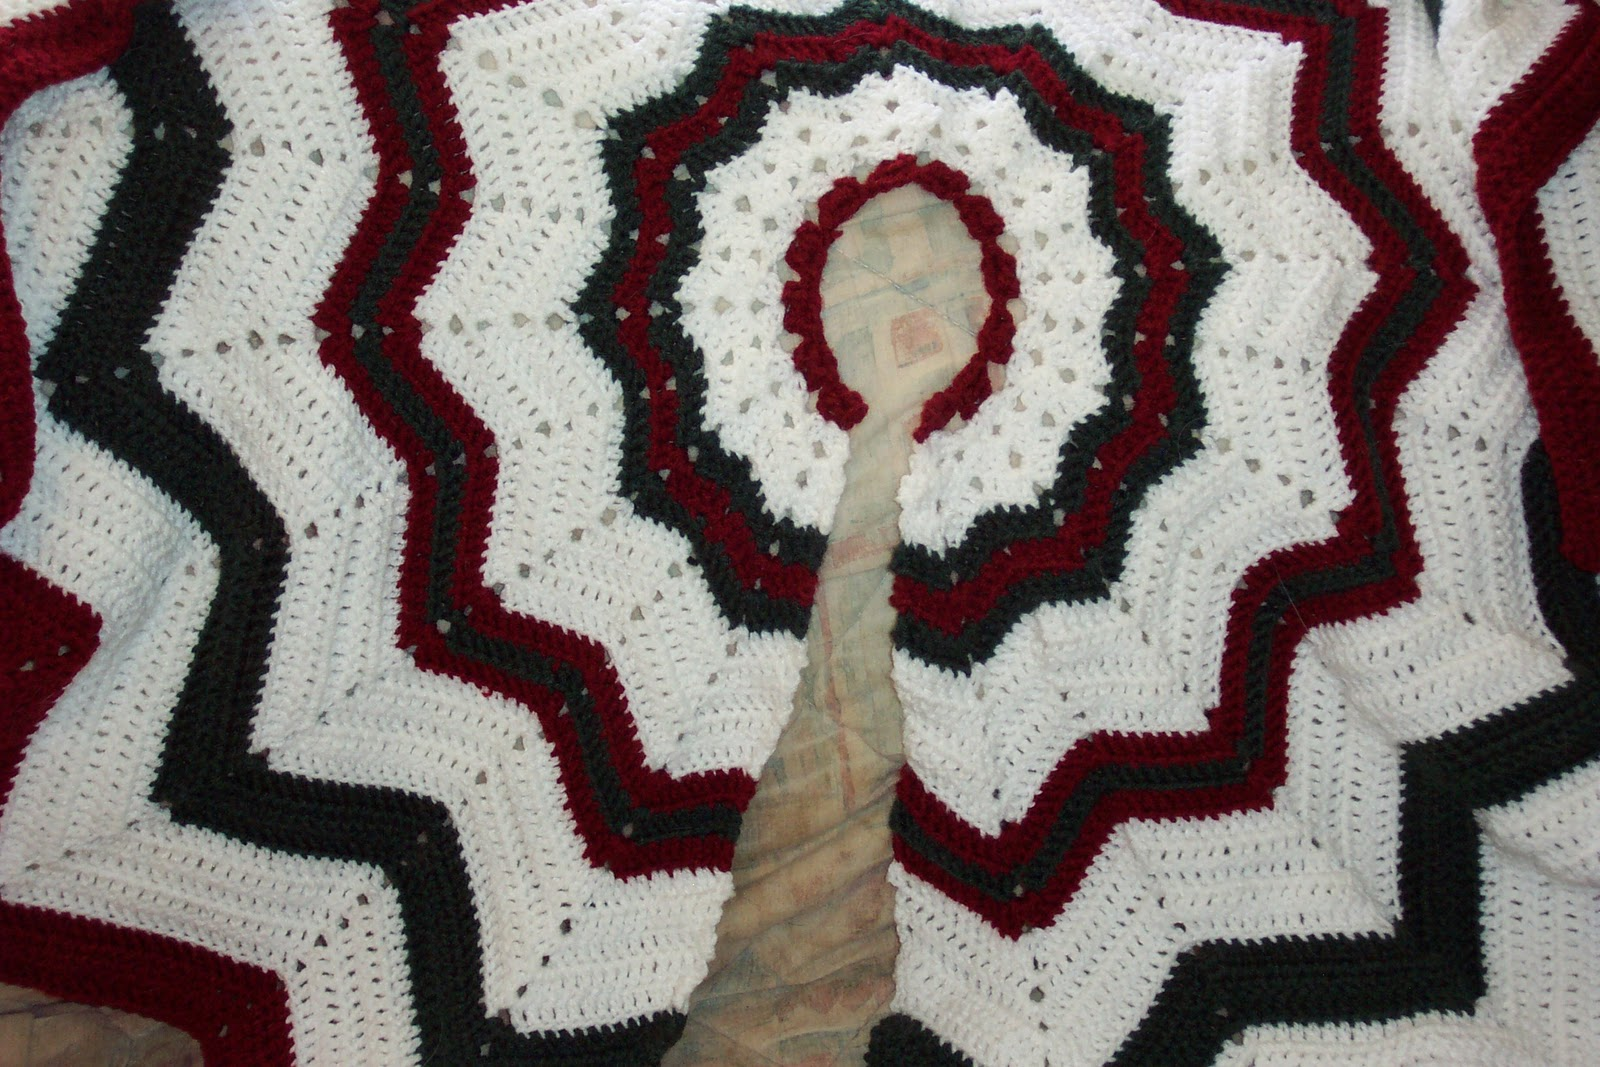 Easy Knitting Pattern For Christmas Tree Skirt : Free crochet pattern for christmas tree skirt